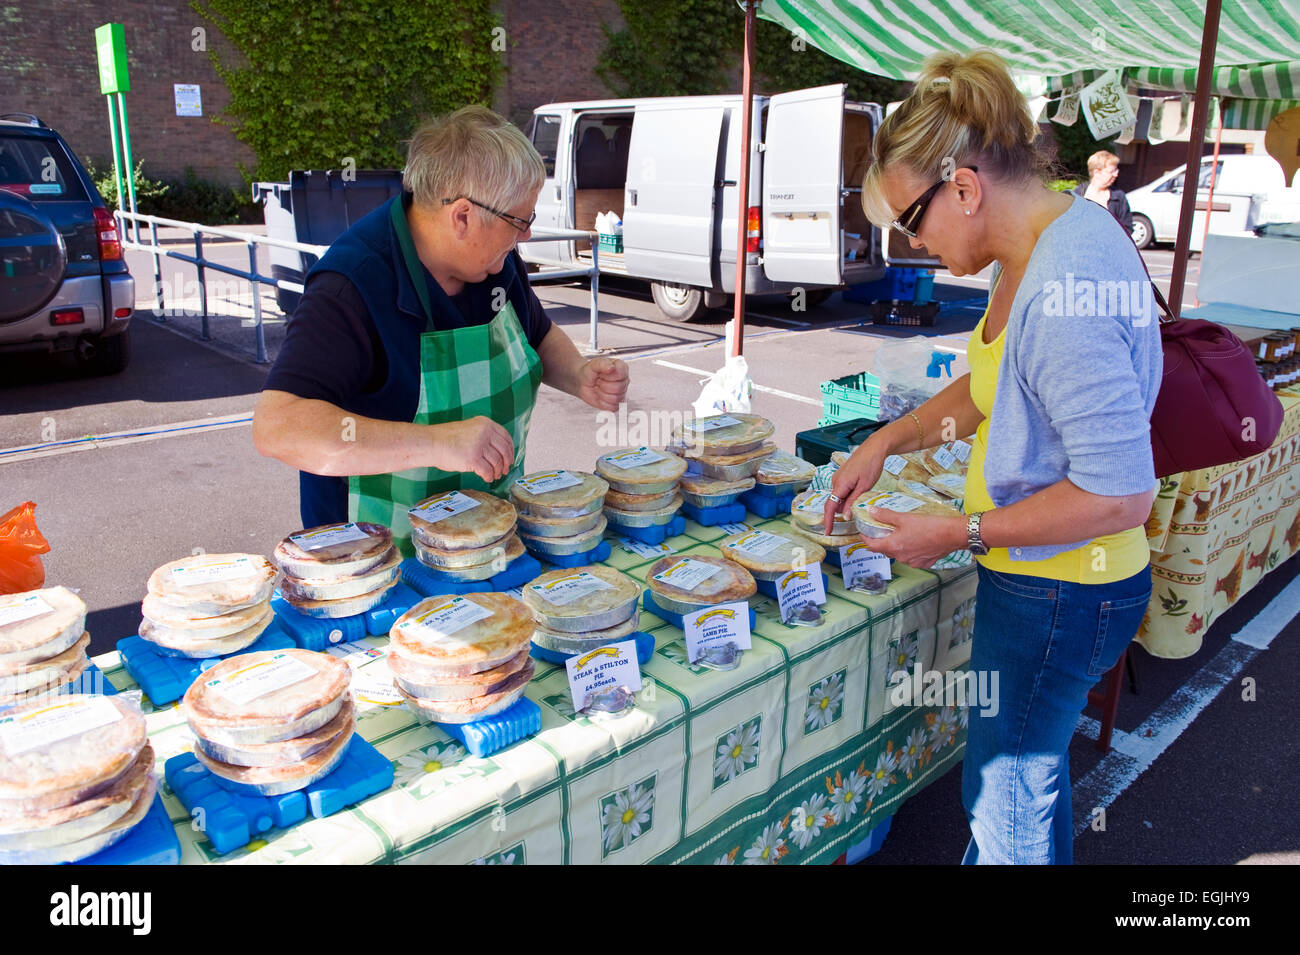 woman buying home made pies at a farmers market - Stock Image